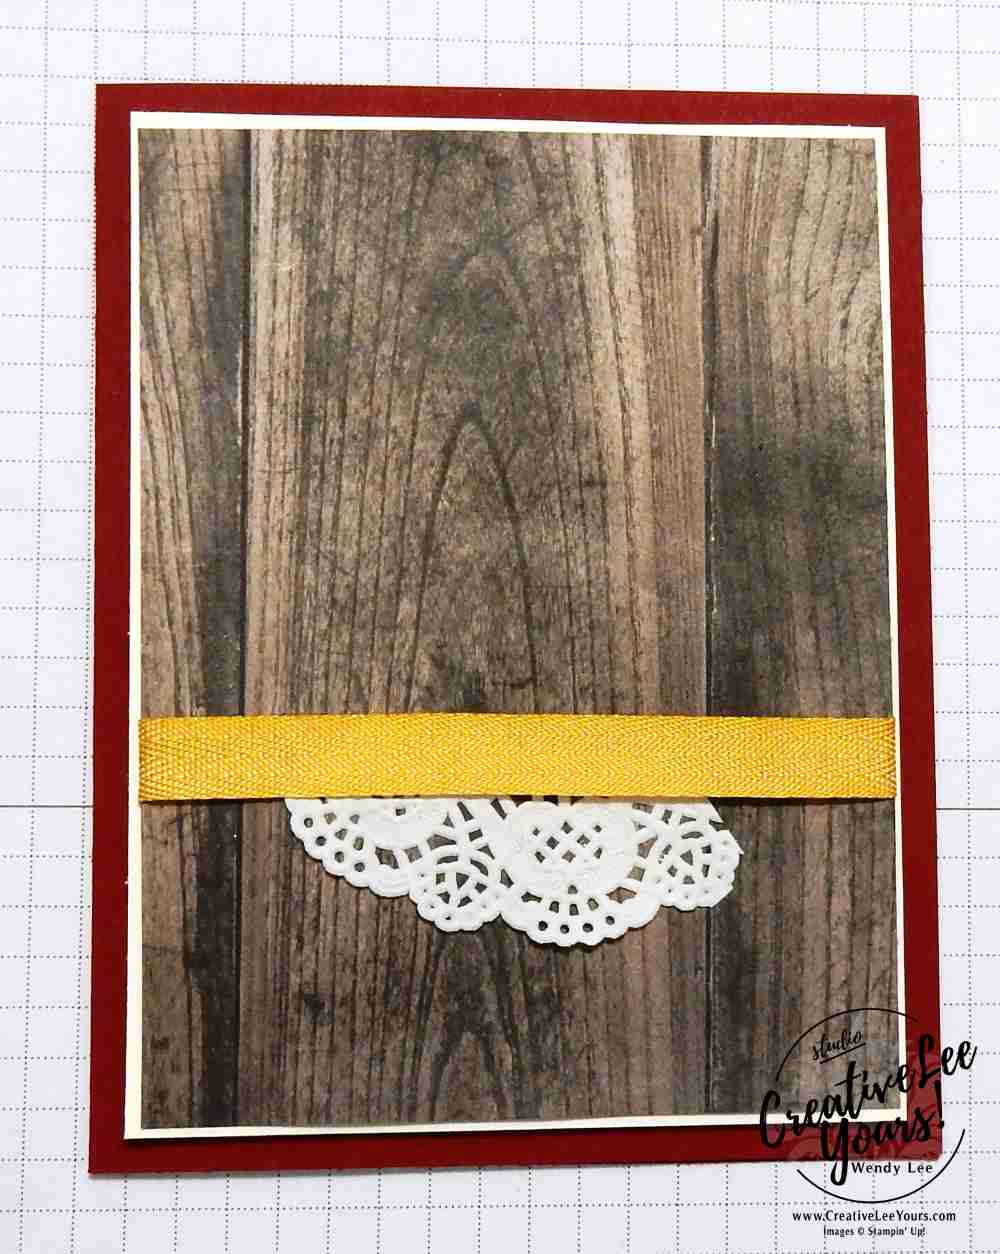 Simple Rooser by wendy lee, stampin up, #creativeleeyours, creatively yours, handmade card, rubber stamps, stamping, new catalog open house, wood textures designer paper, wood words stamp set